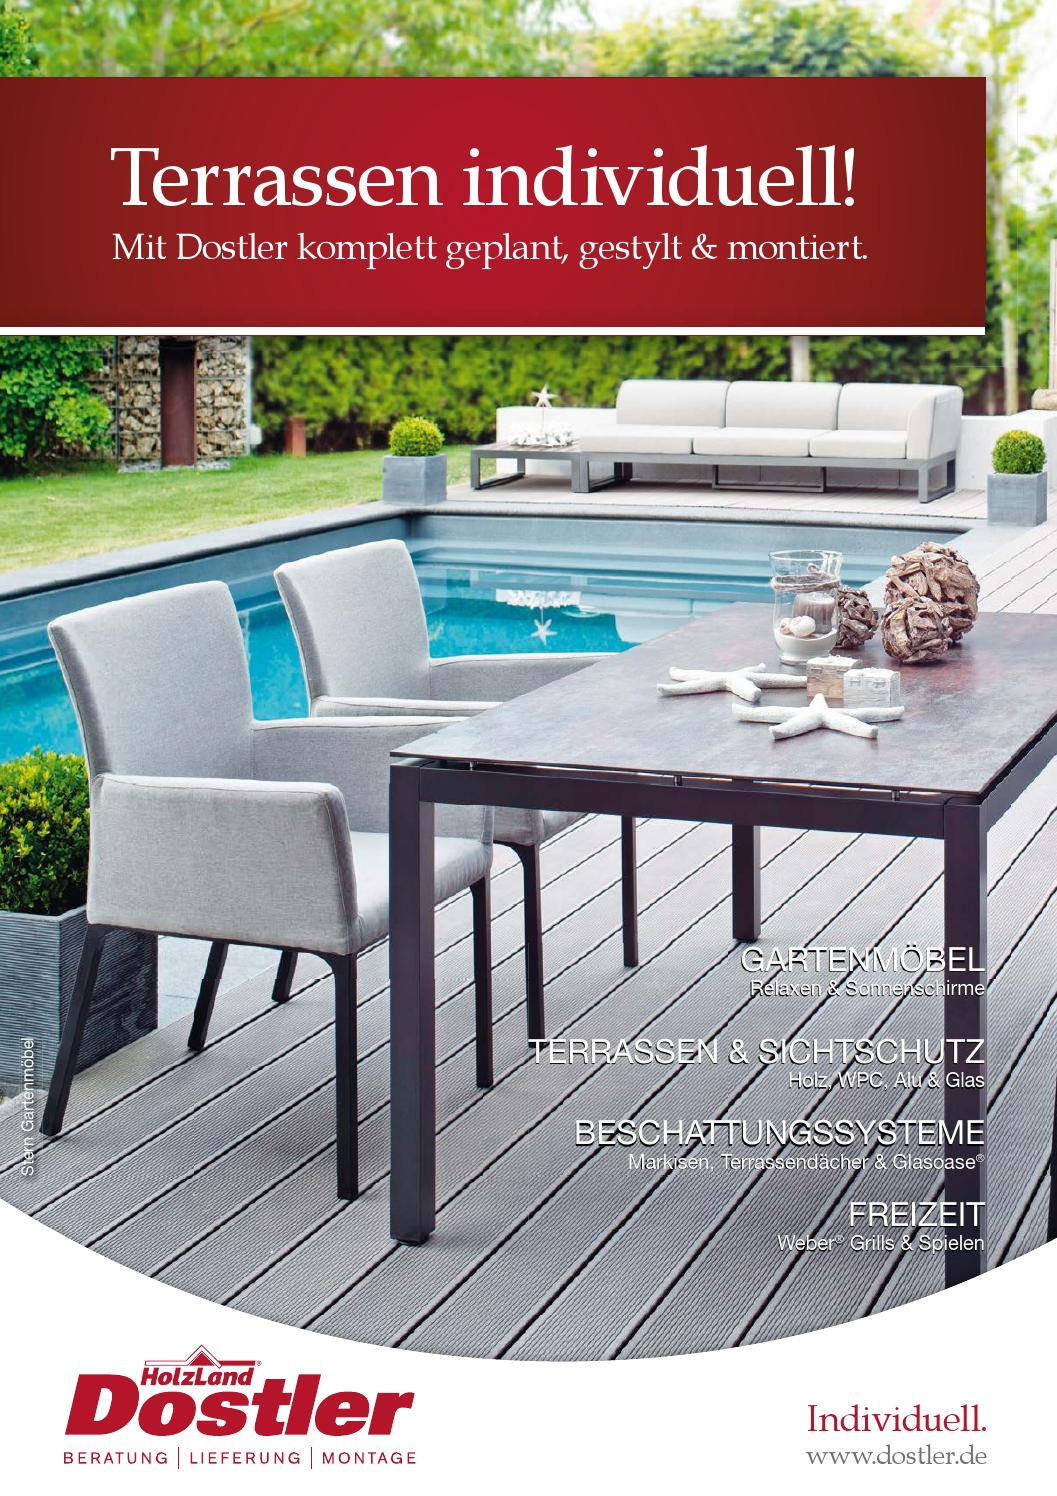 Kettler Lofttisch 95x95 Gartenbeilage 2014 By Opus Marketing Gmbh Issuu